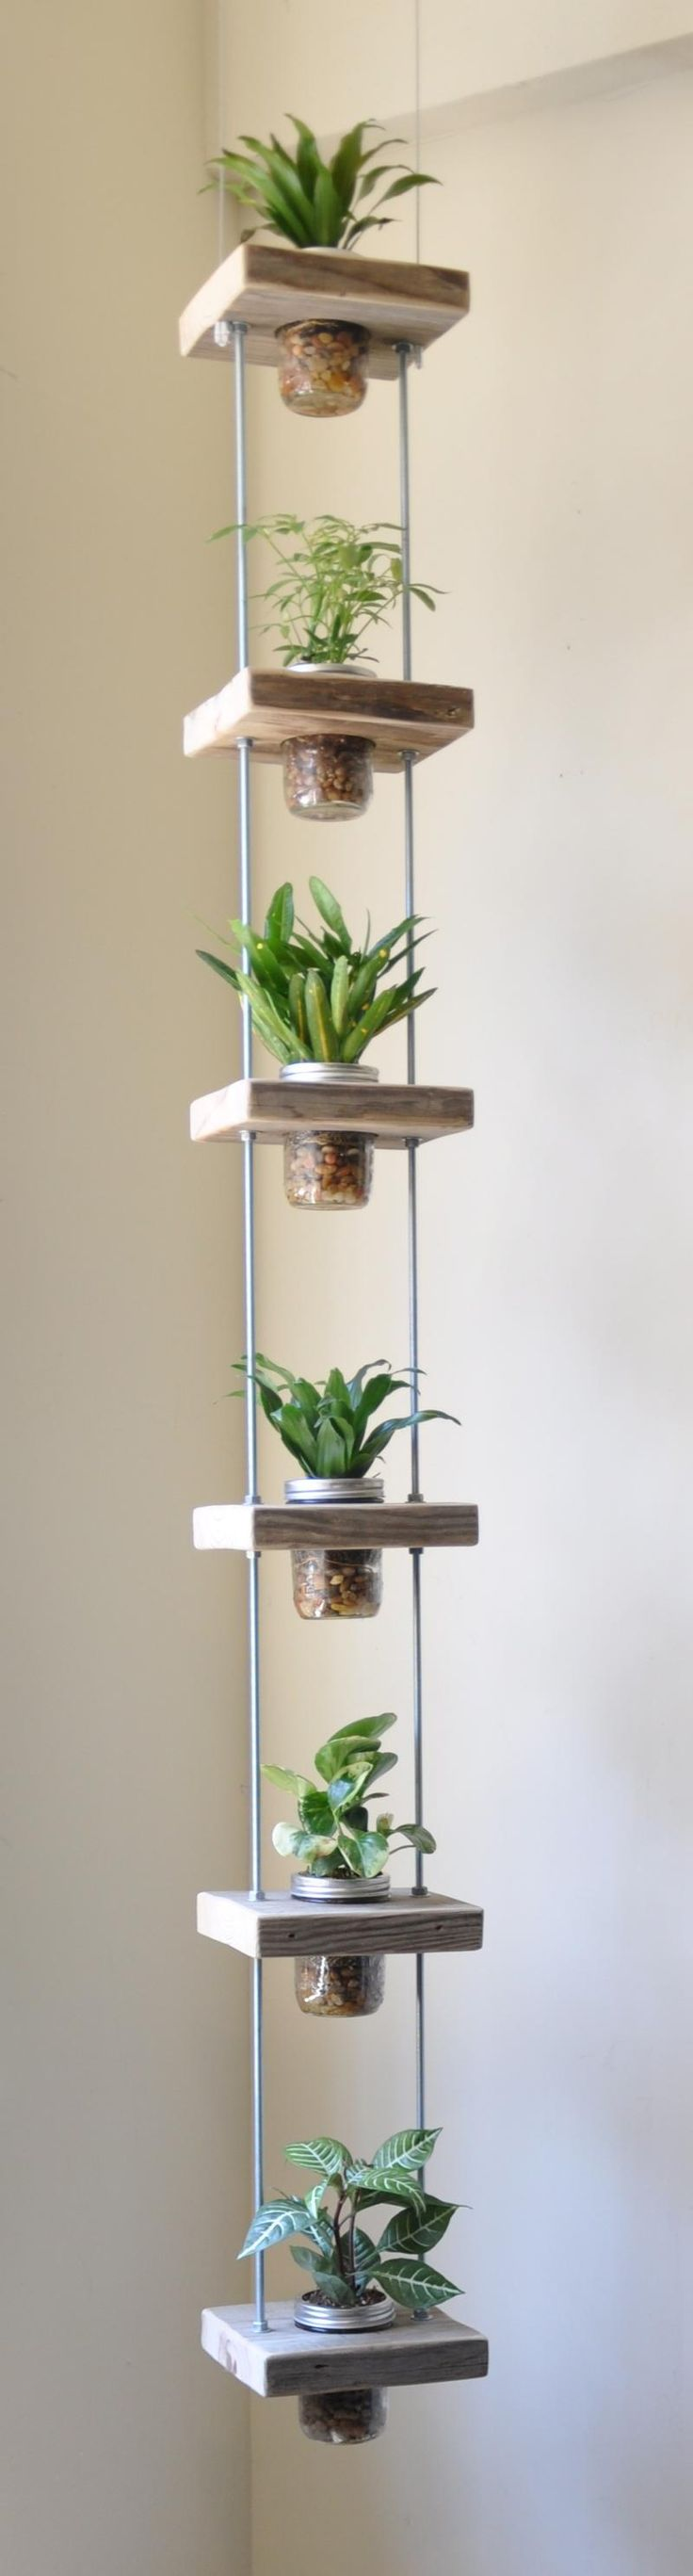 Vertical garden or hanging planter